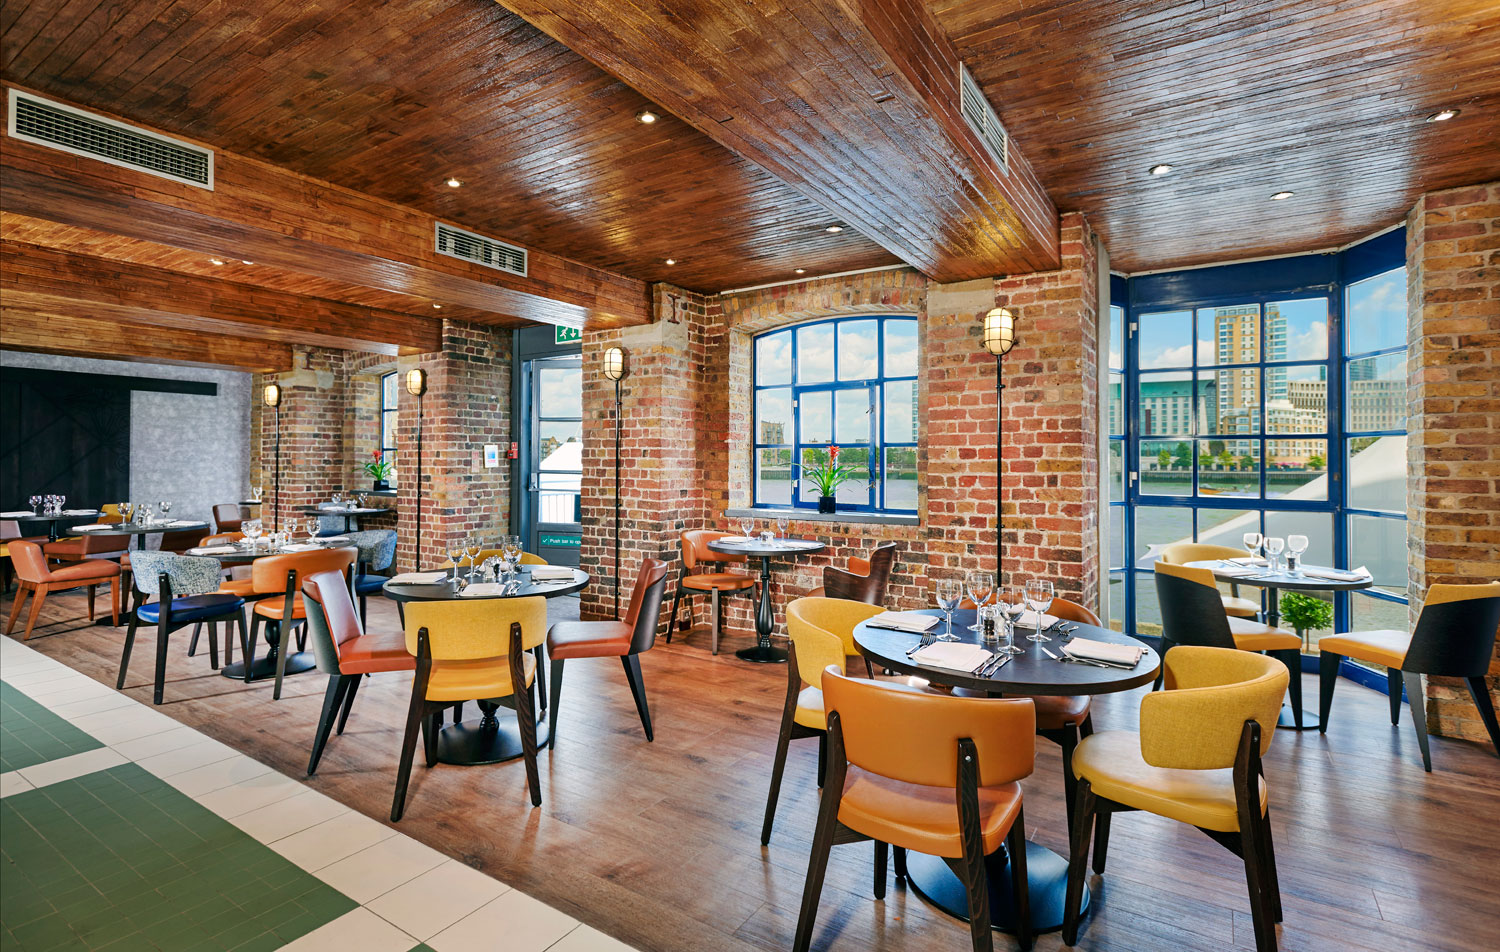 Comunmbia Restaurant at DoubleTree By Hilton Hotel London - Docklands